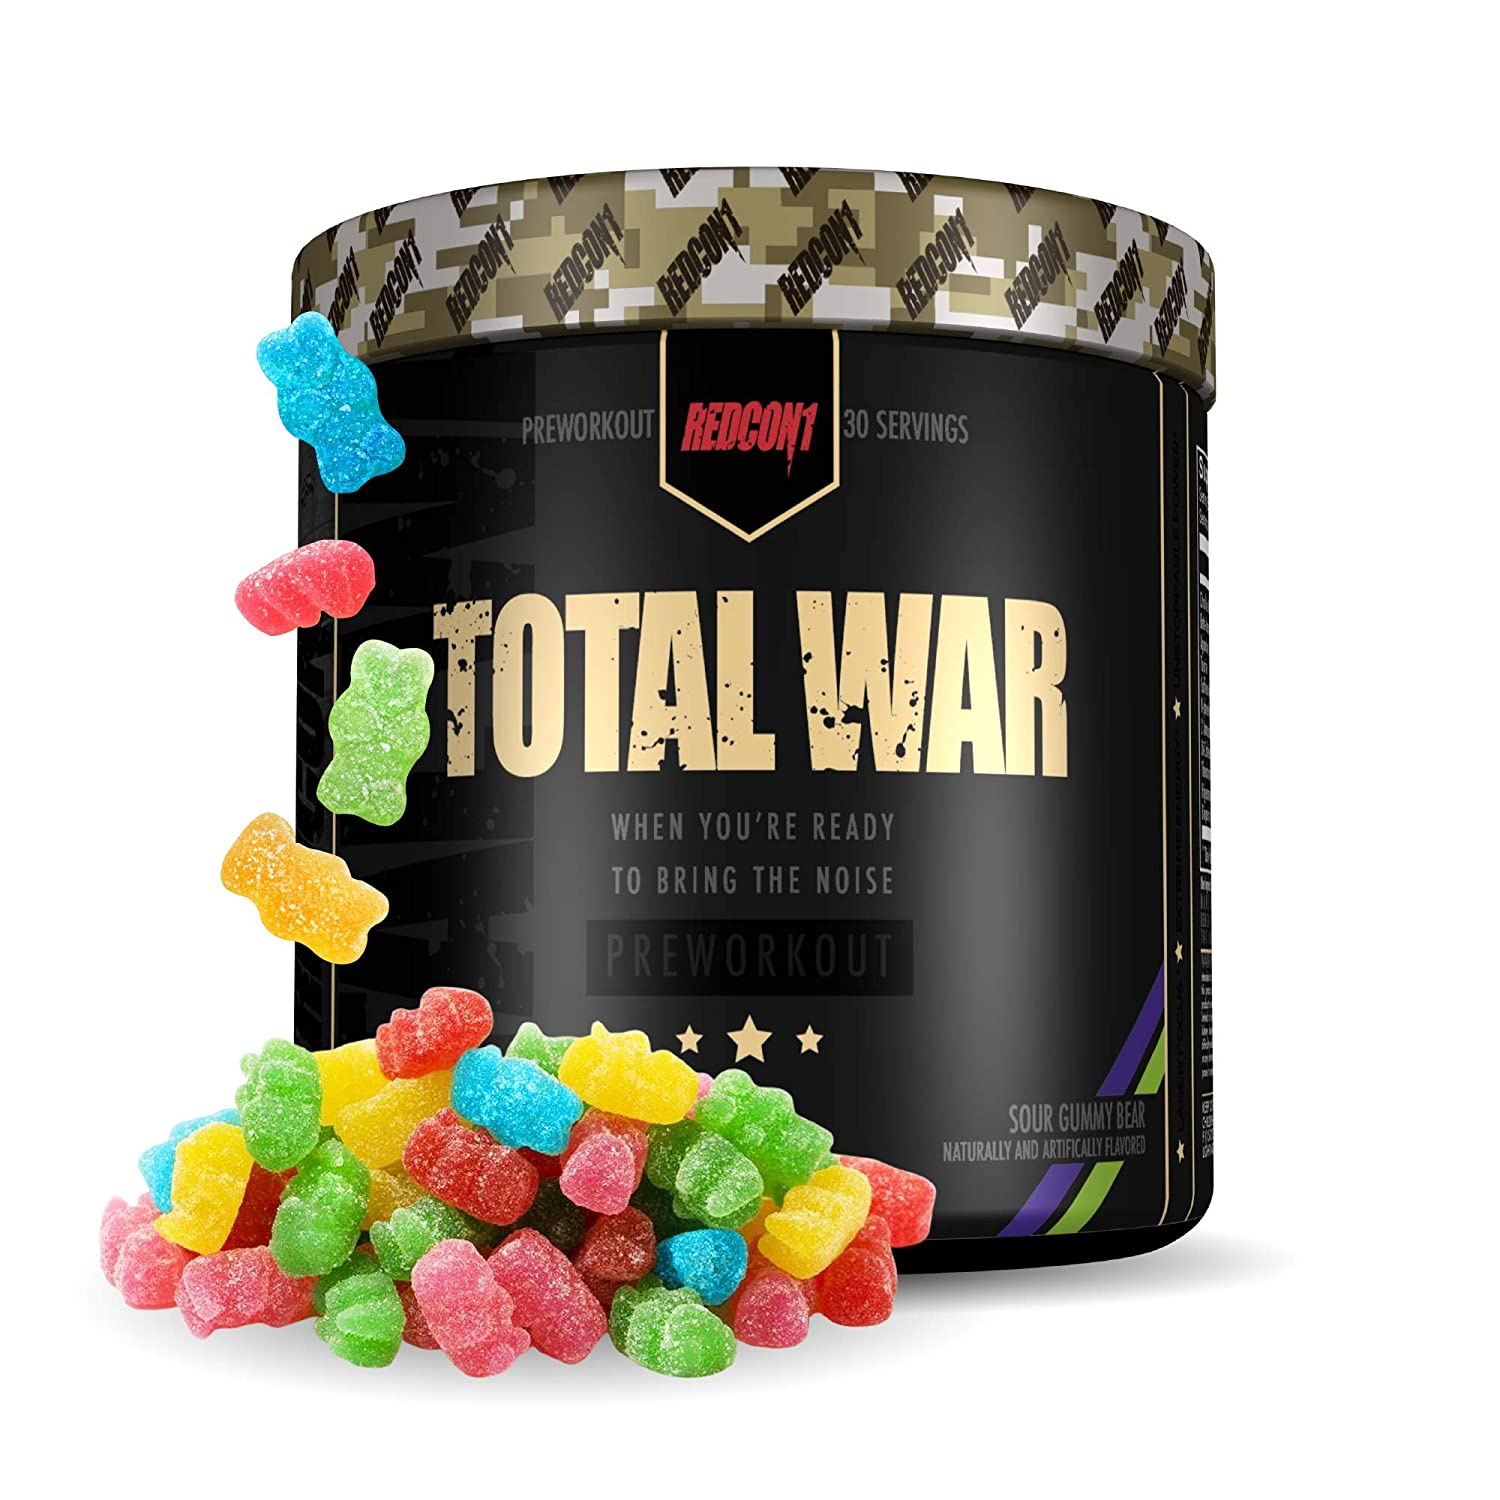 Redcon1 Total War - Pre Workout, 30 Servings, (Sour Gummy) Boost Energy, Increase Endurance and Focus, Beta-Alanine, 350mg Caffeine, Citrulline Malate, Nitric Oxide Booster - Keto Friendly -…